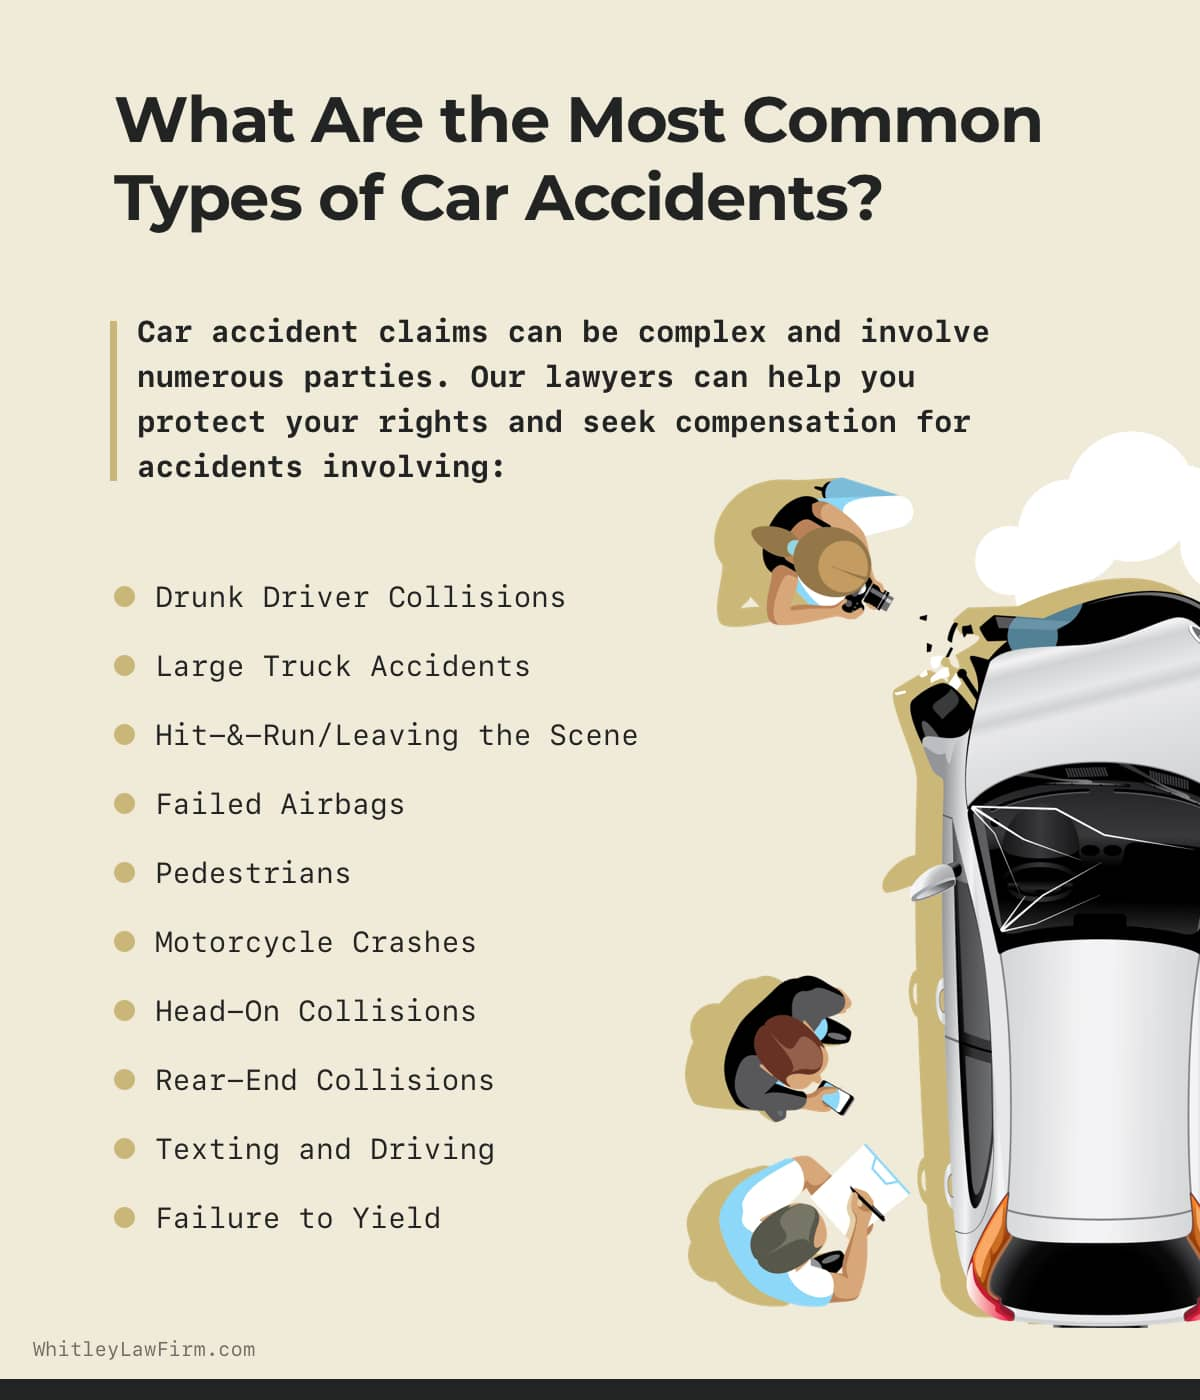 What Are the Most Common Types of Car Accidents? | Whitley Law Firm